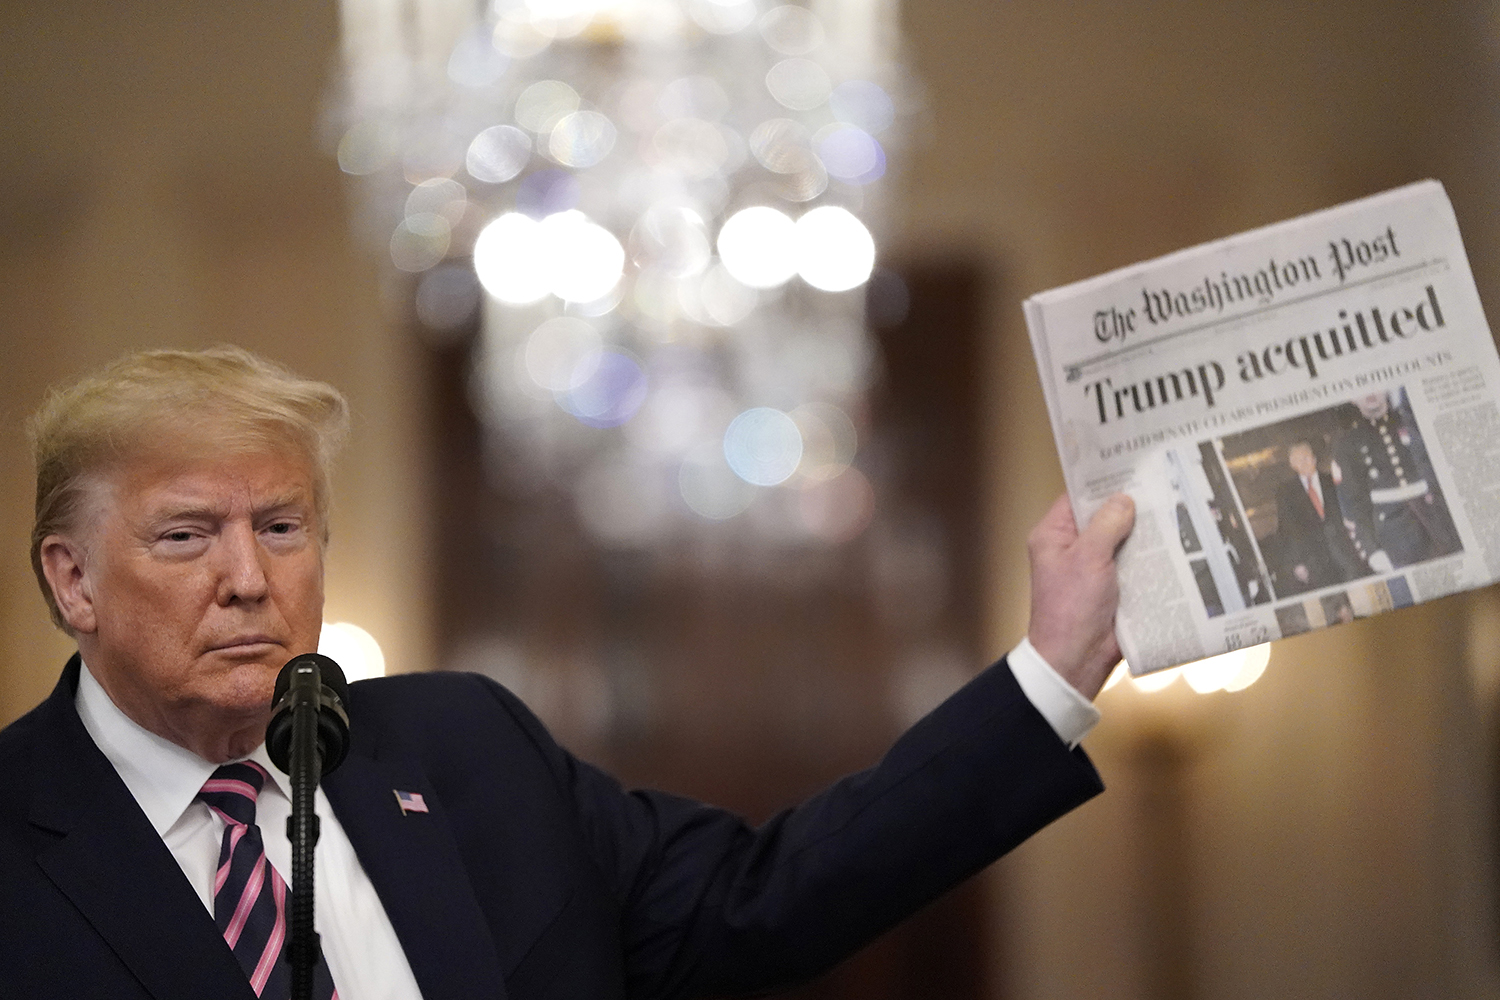 Trump holds a copy of the Washington Post as he speaks in the East Room of the White House on Feb. 6, one day after the U.S. Senate acquitted him on two articles of impeachment. Drew Angerer/Getty Images